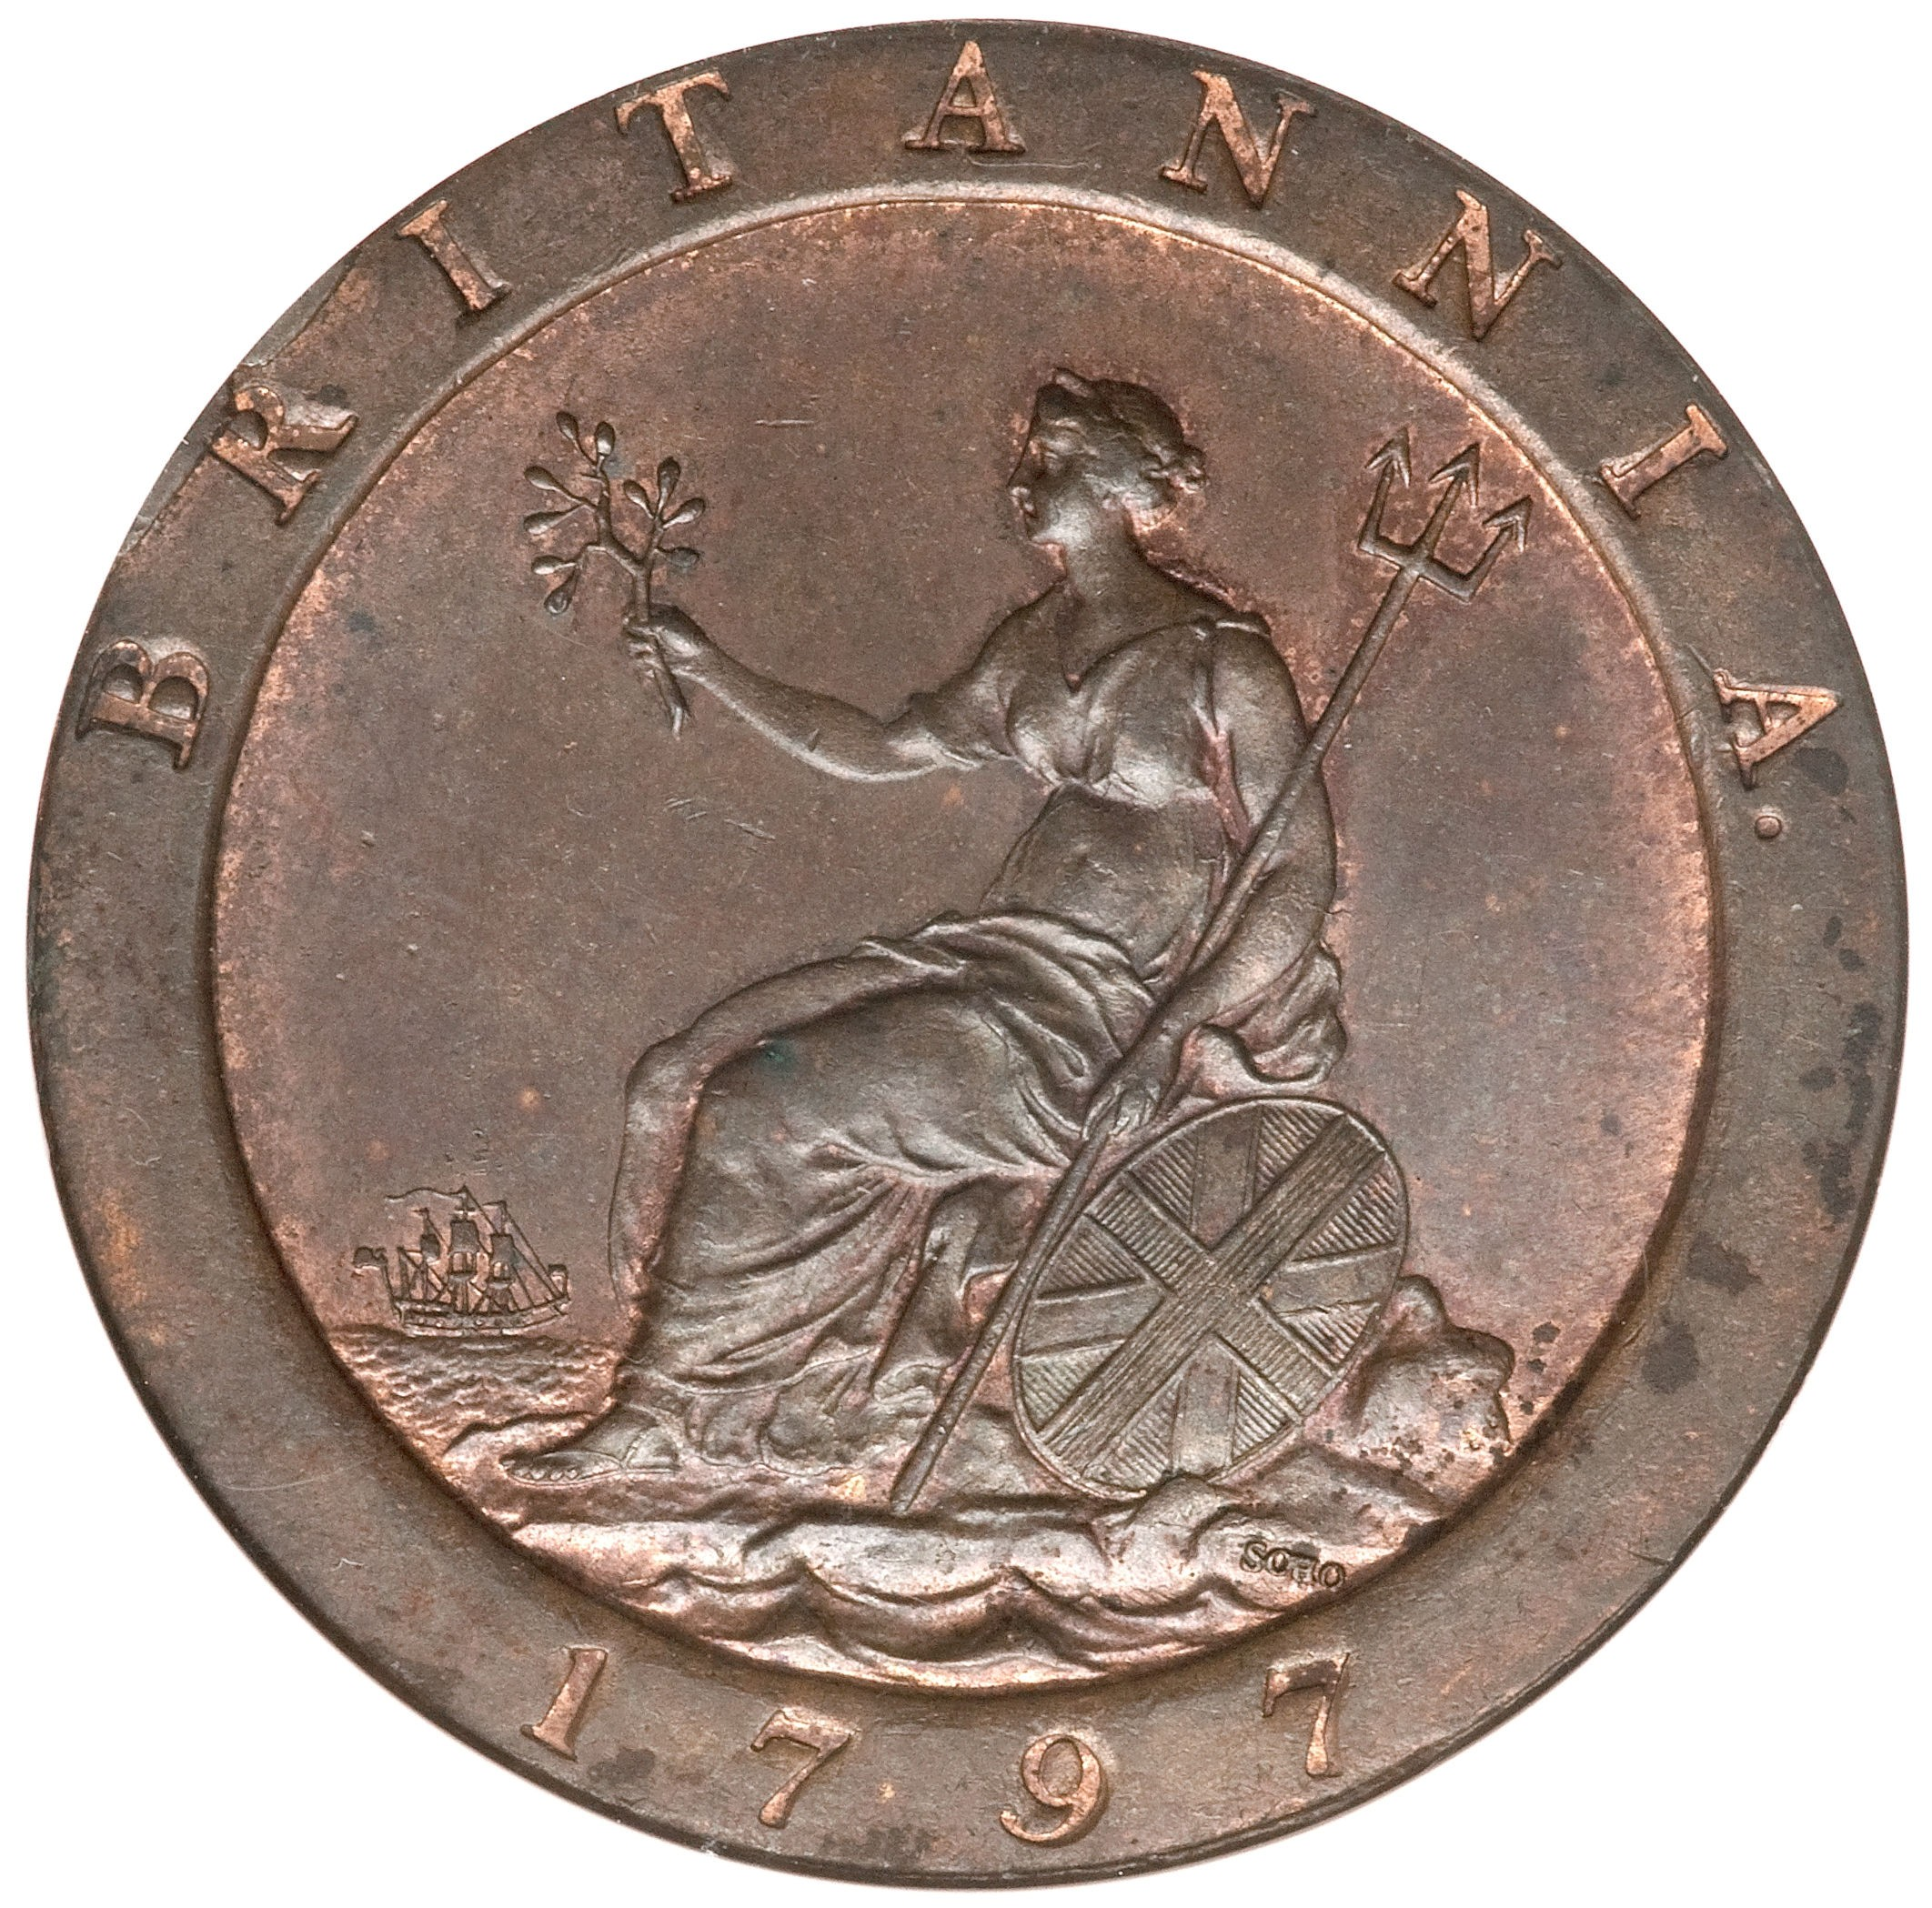 British 1 Penny (Cartwheel)